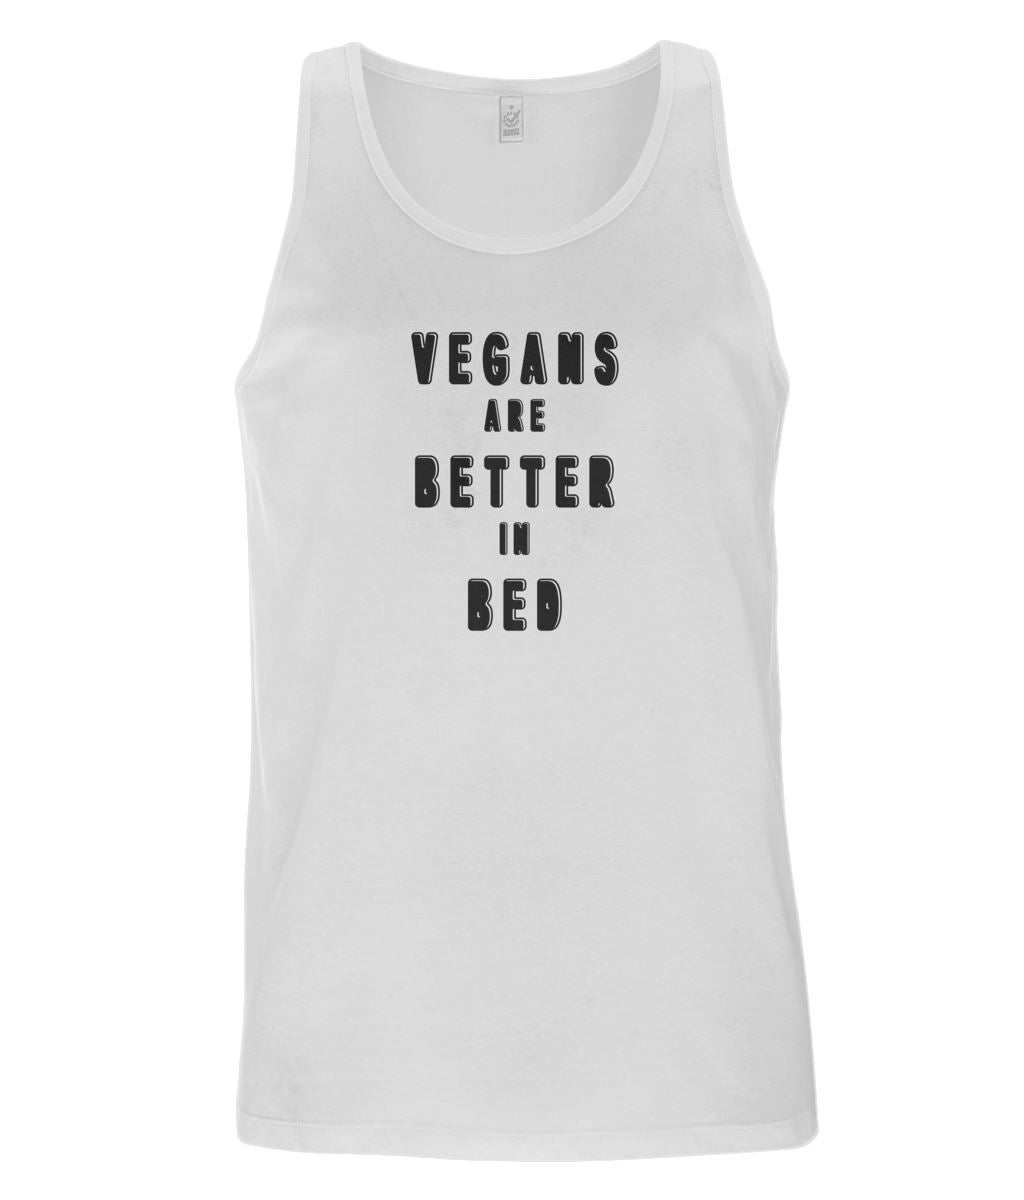 """Vegans Are Better In Bed"" Men's Vest - 100% Organic Cotton Clothing Vegan Original White Small"